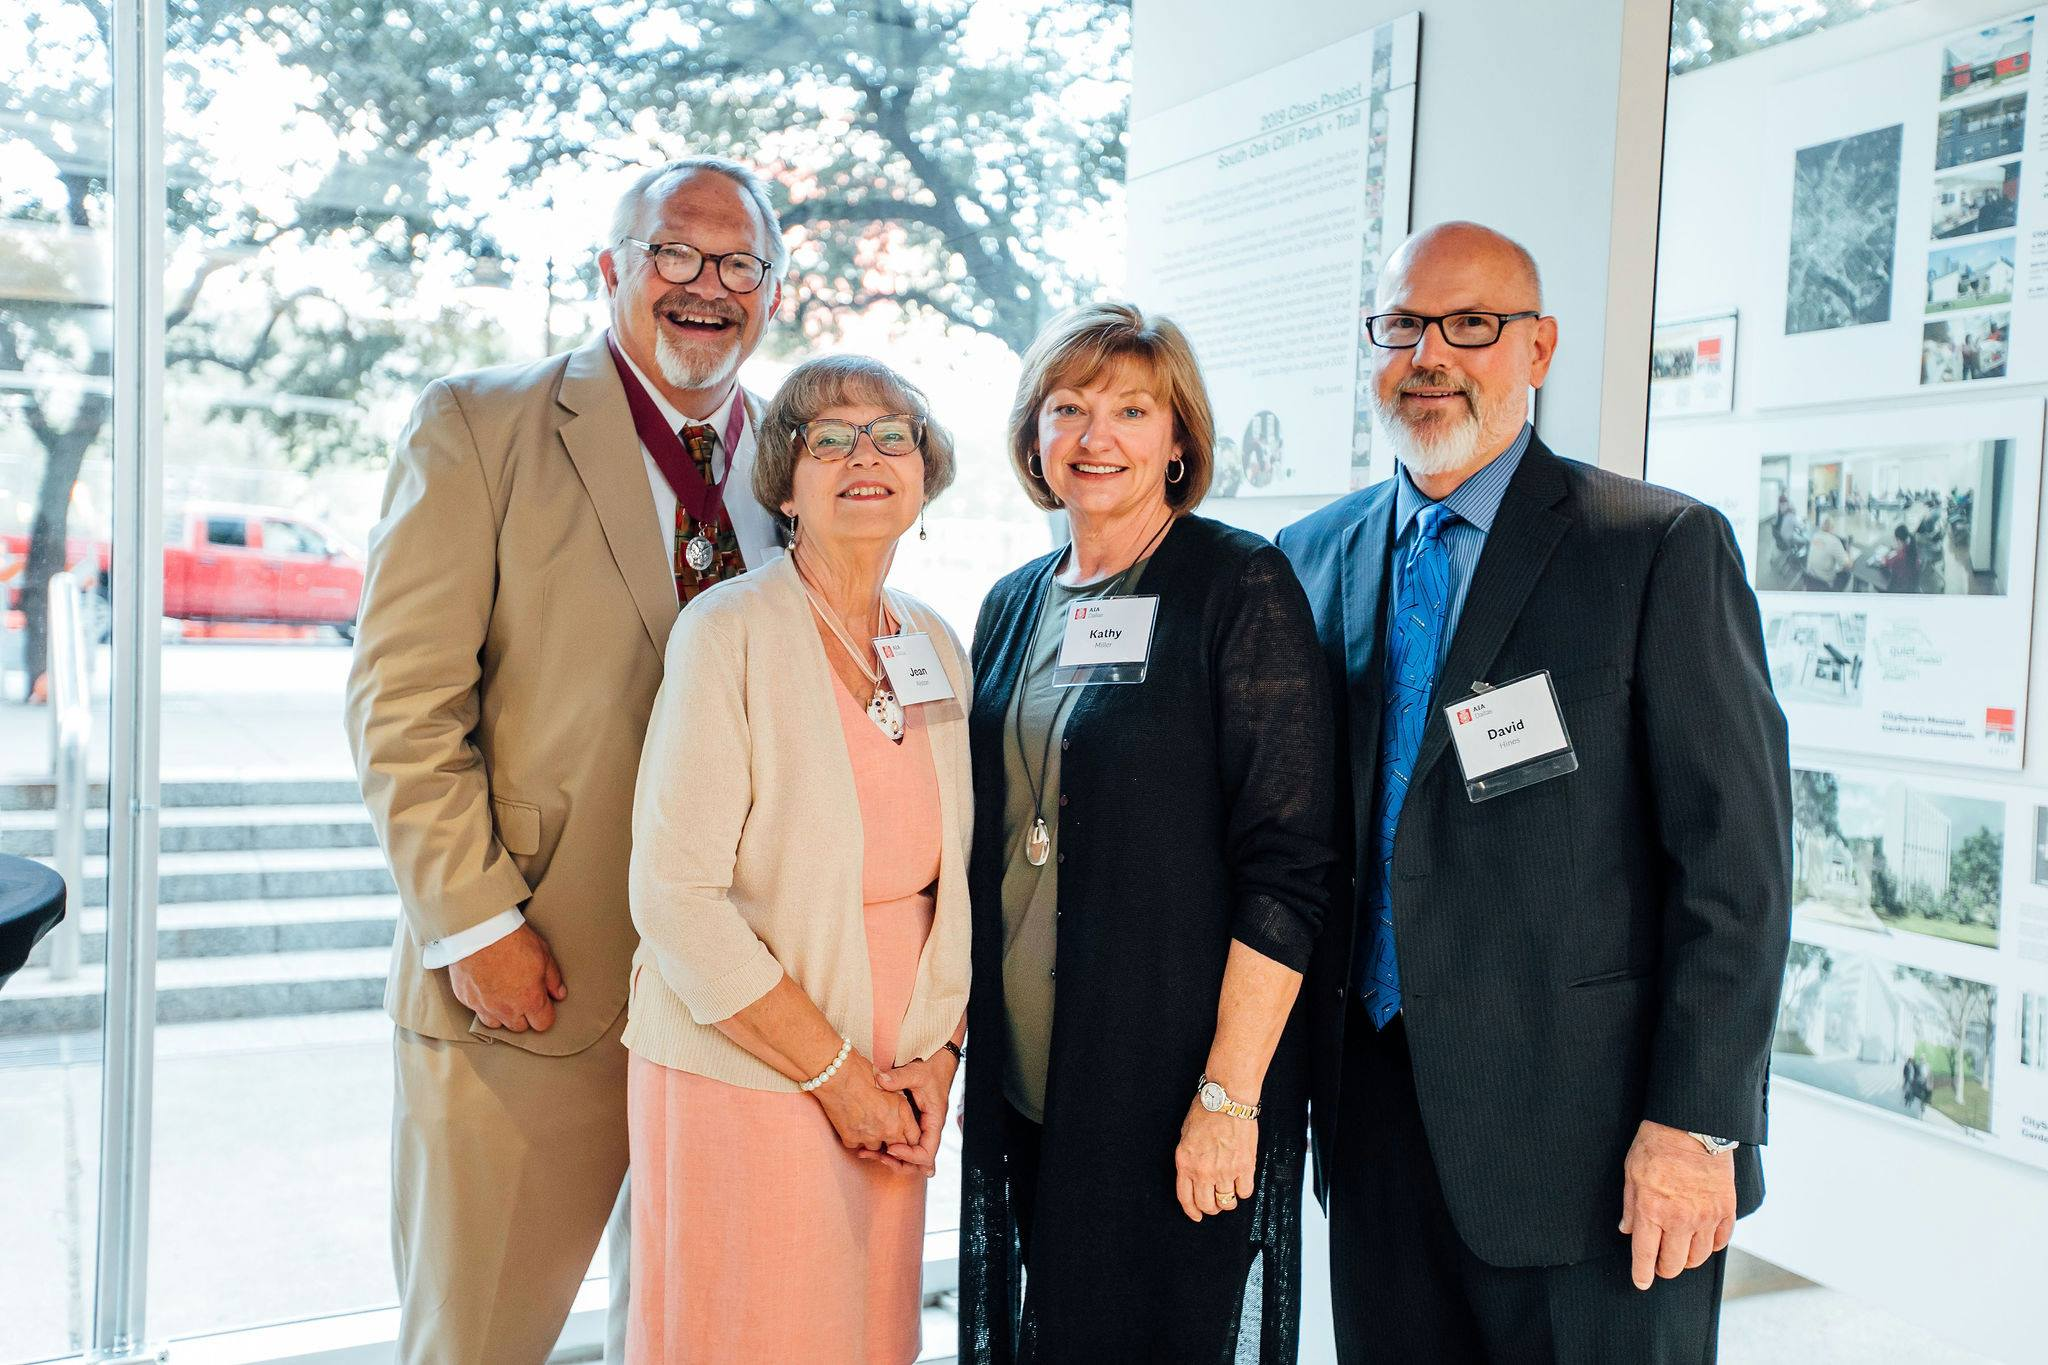 It was important to have friends and family join me at the celebration. Jean Feifer Alston, Kathy Alston Miller and David A. Hines.